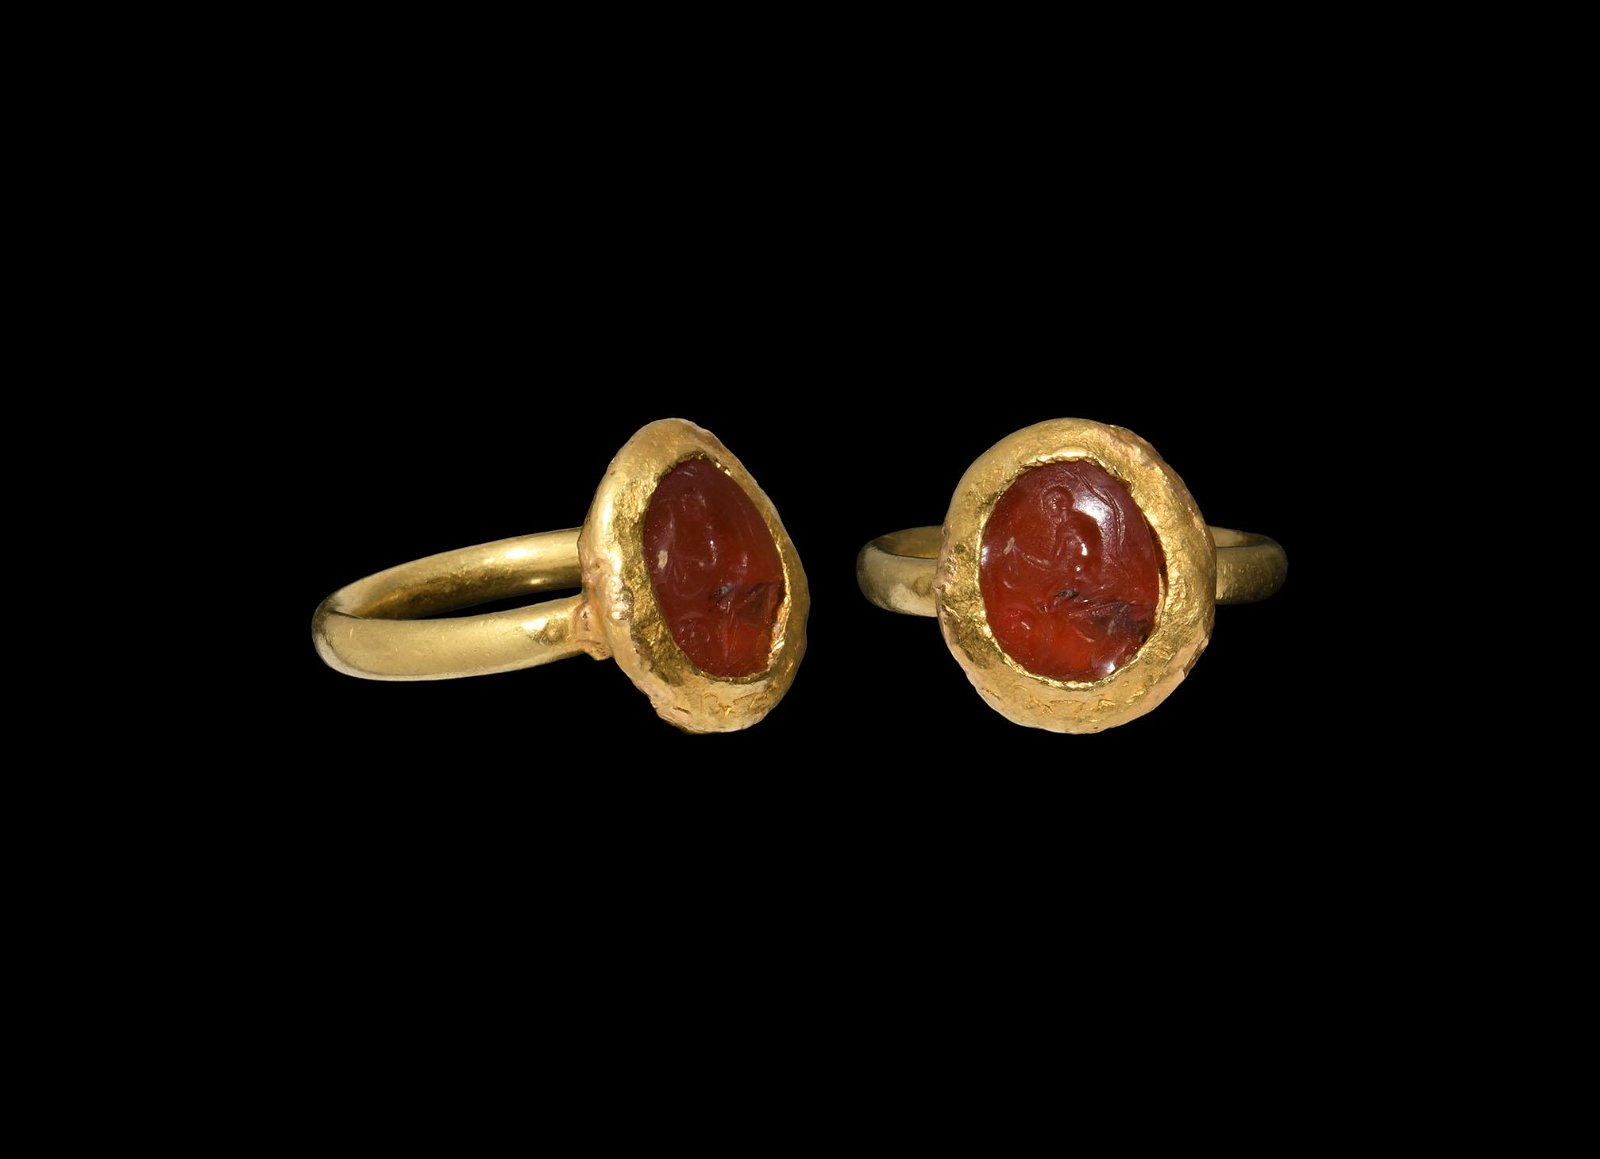 Roman Gold Ring with Seated Figure Gemstone